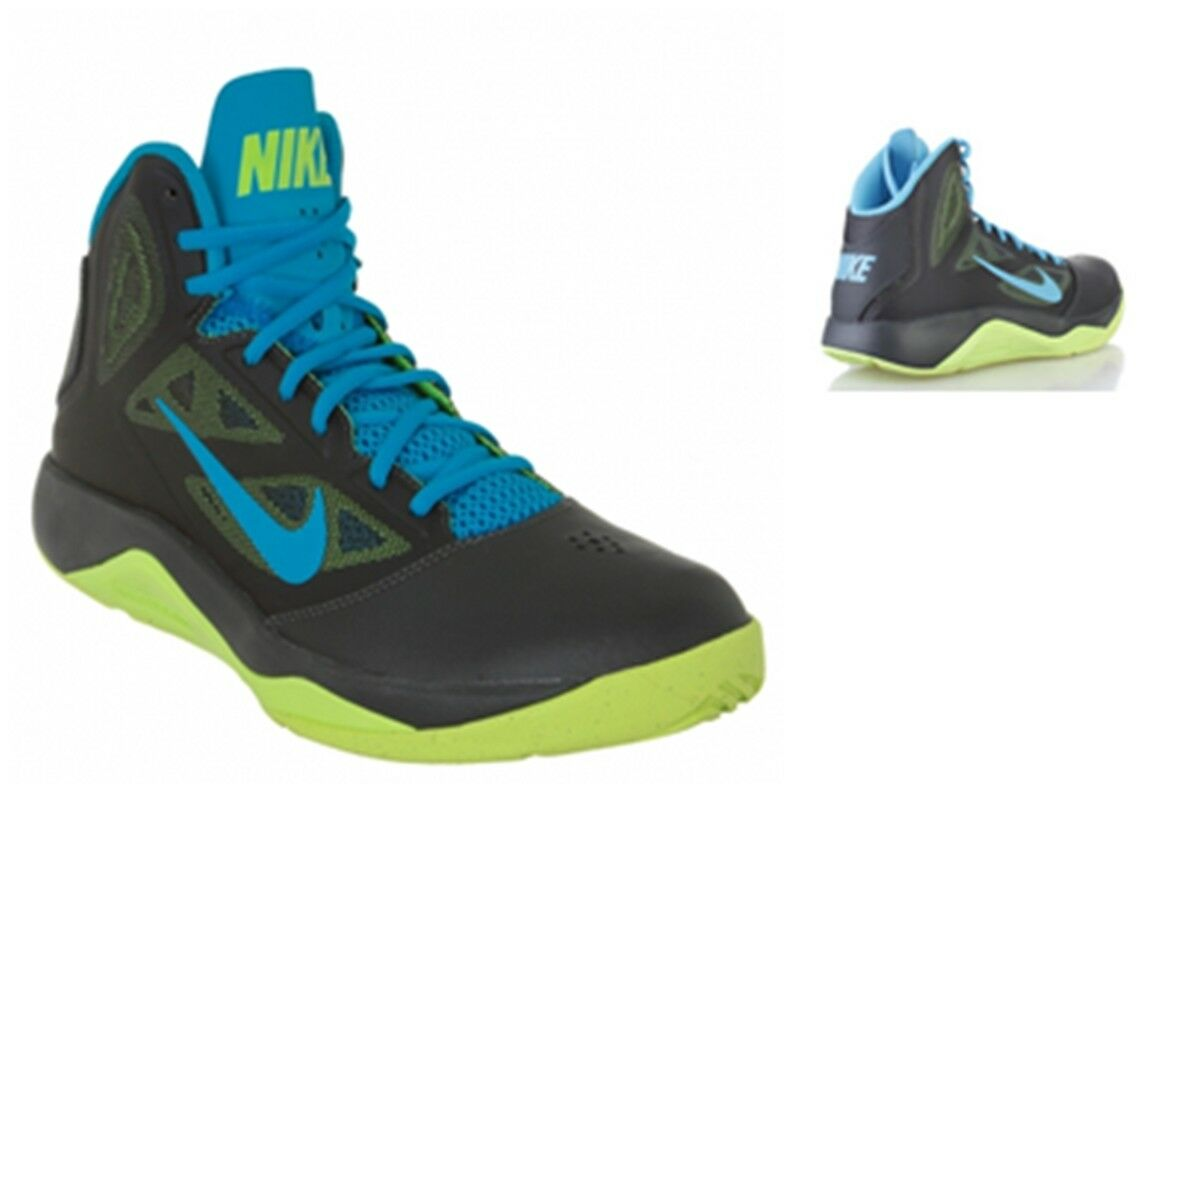 NIKE SHOES GYM DUAL FUSION MEN MEN MEN BASKETBALL GYM SHOES 610202 007 6025a2